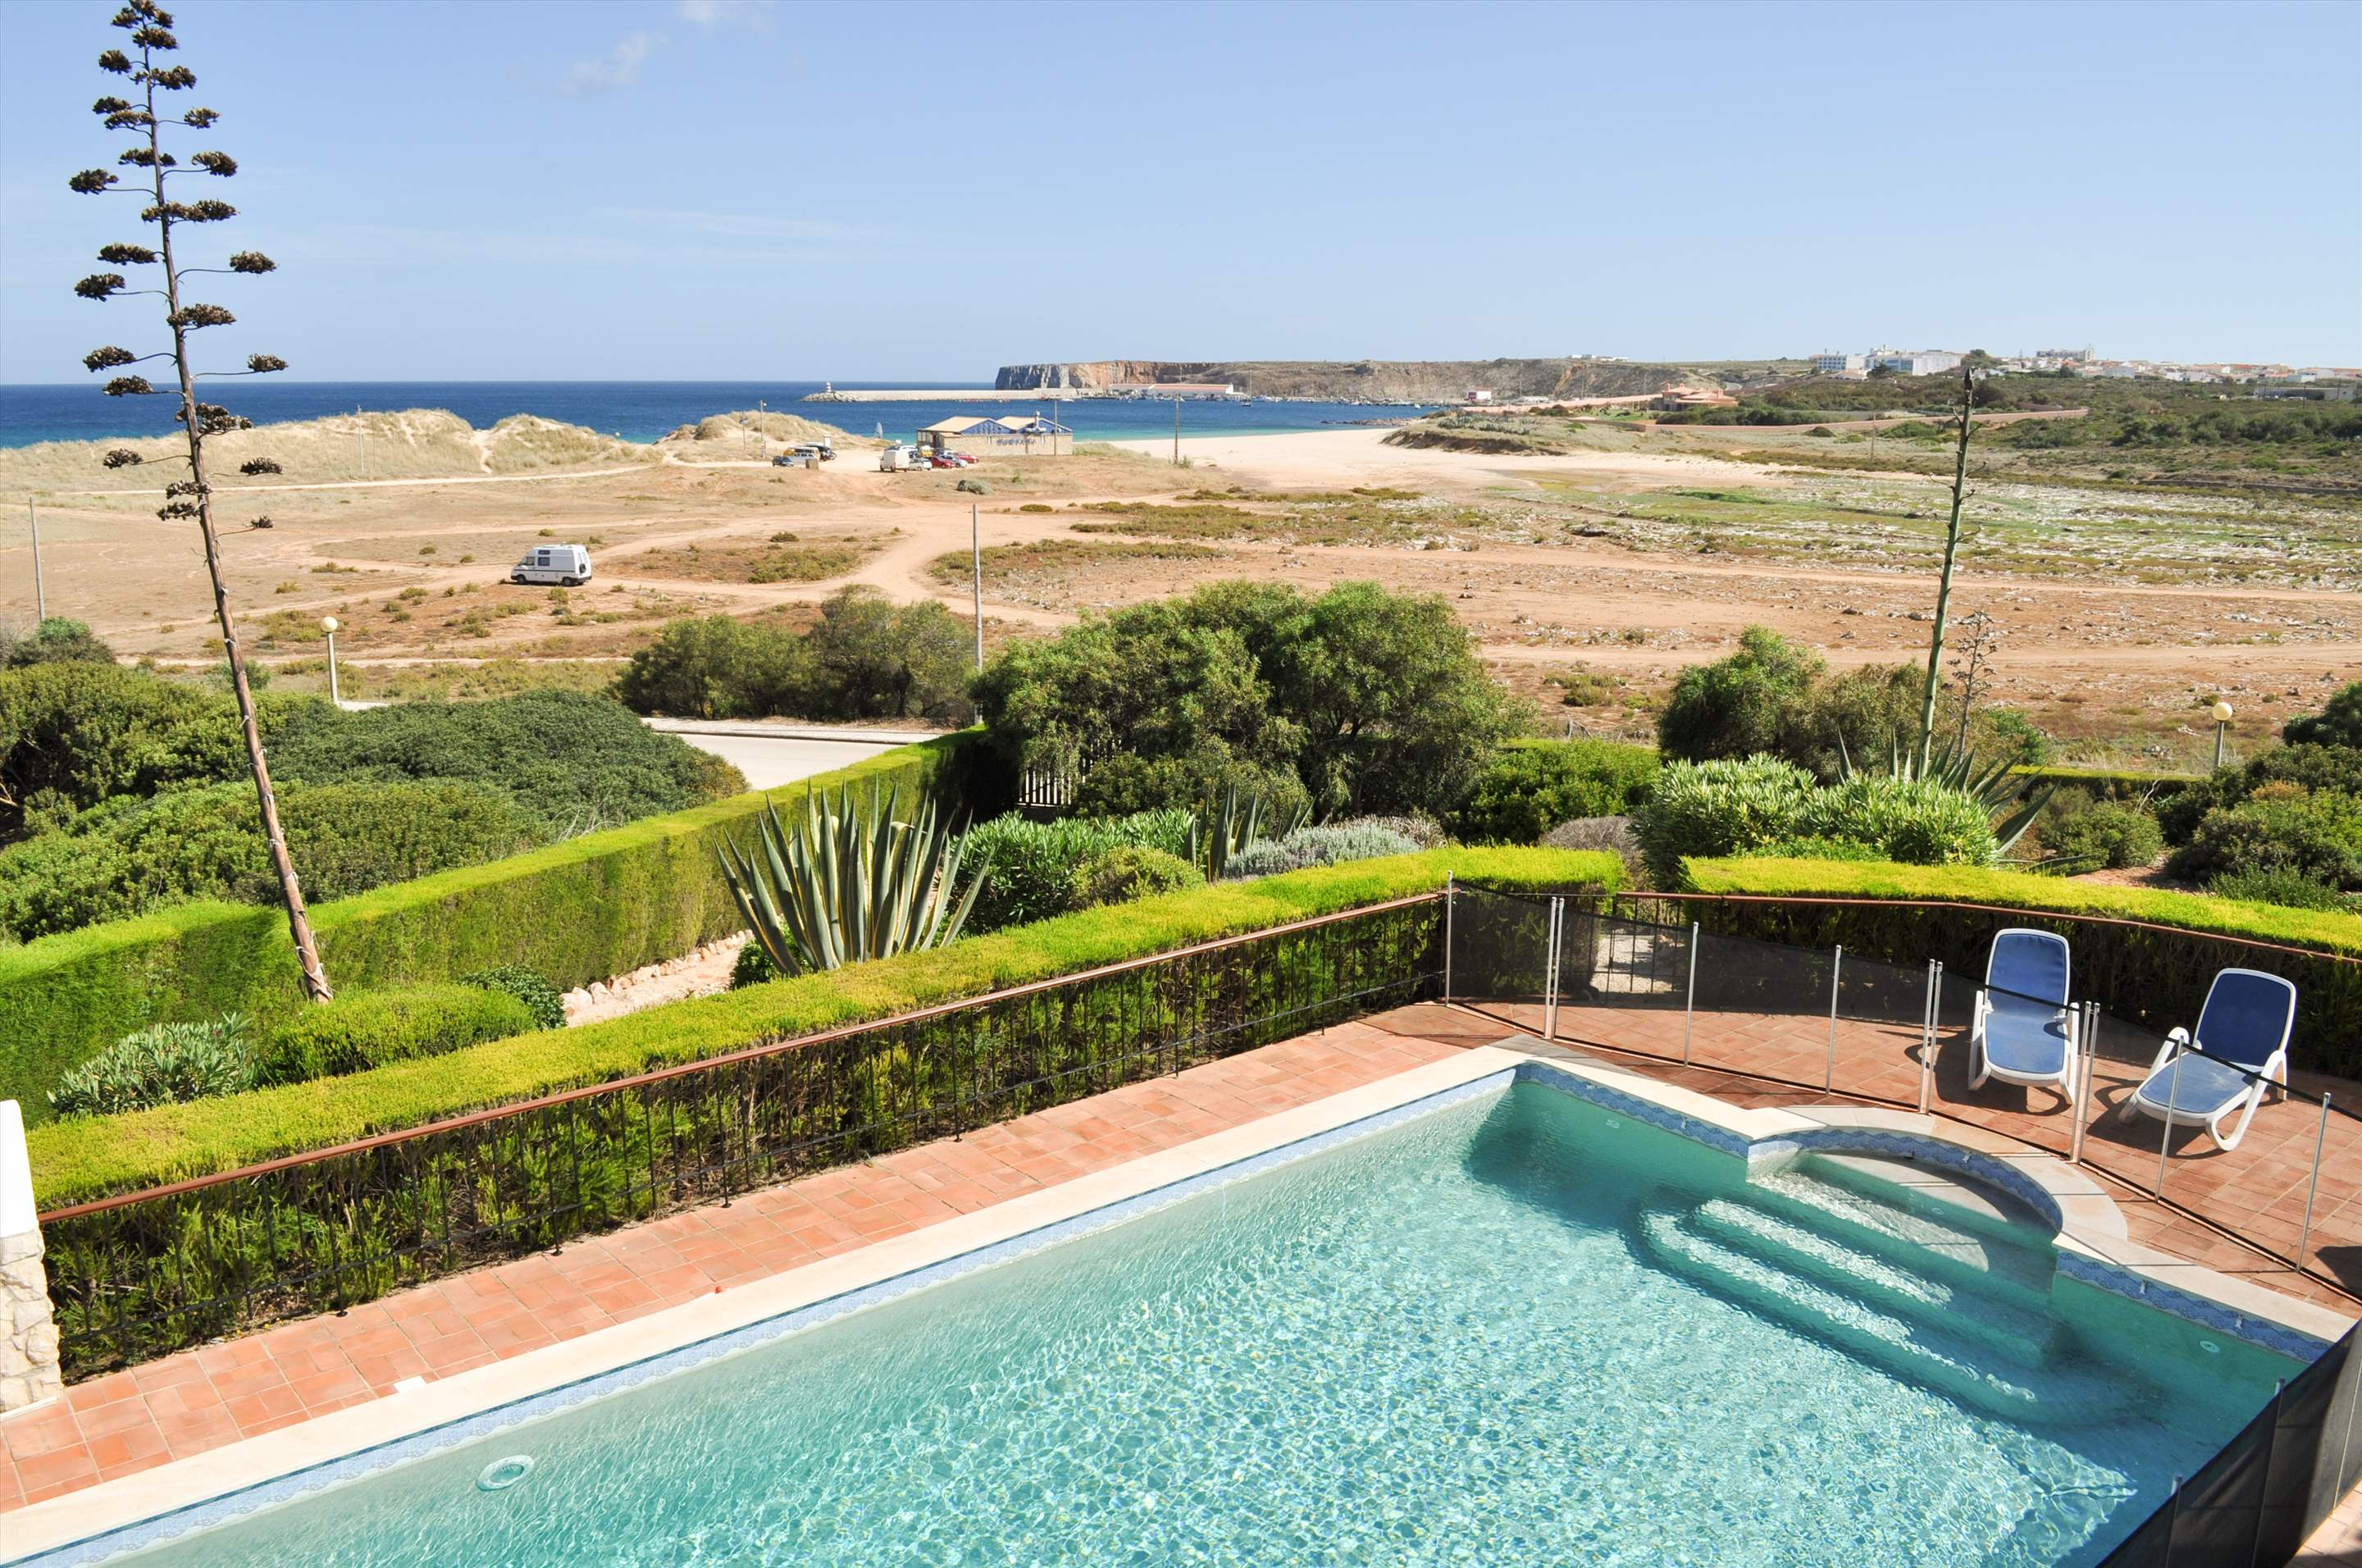 Martinhal Luxury Villa No.38, 3 bedroom villa in Martinhal Sagres, Algarve Photo #1